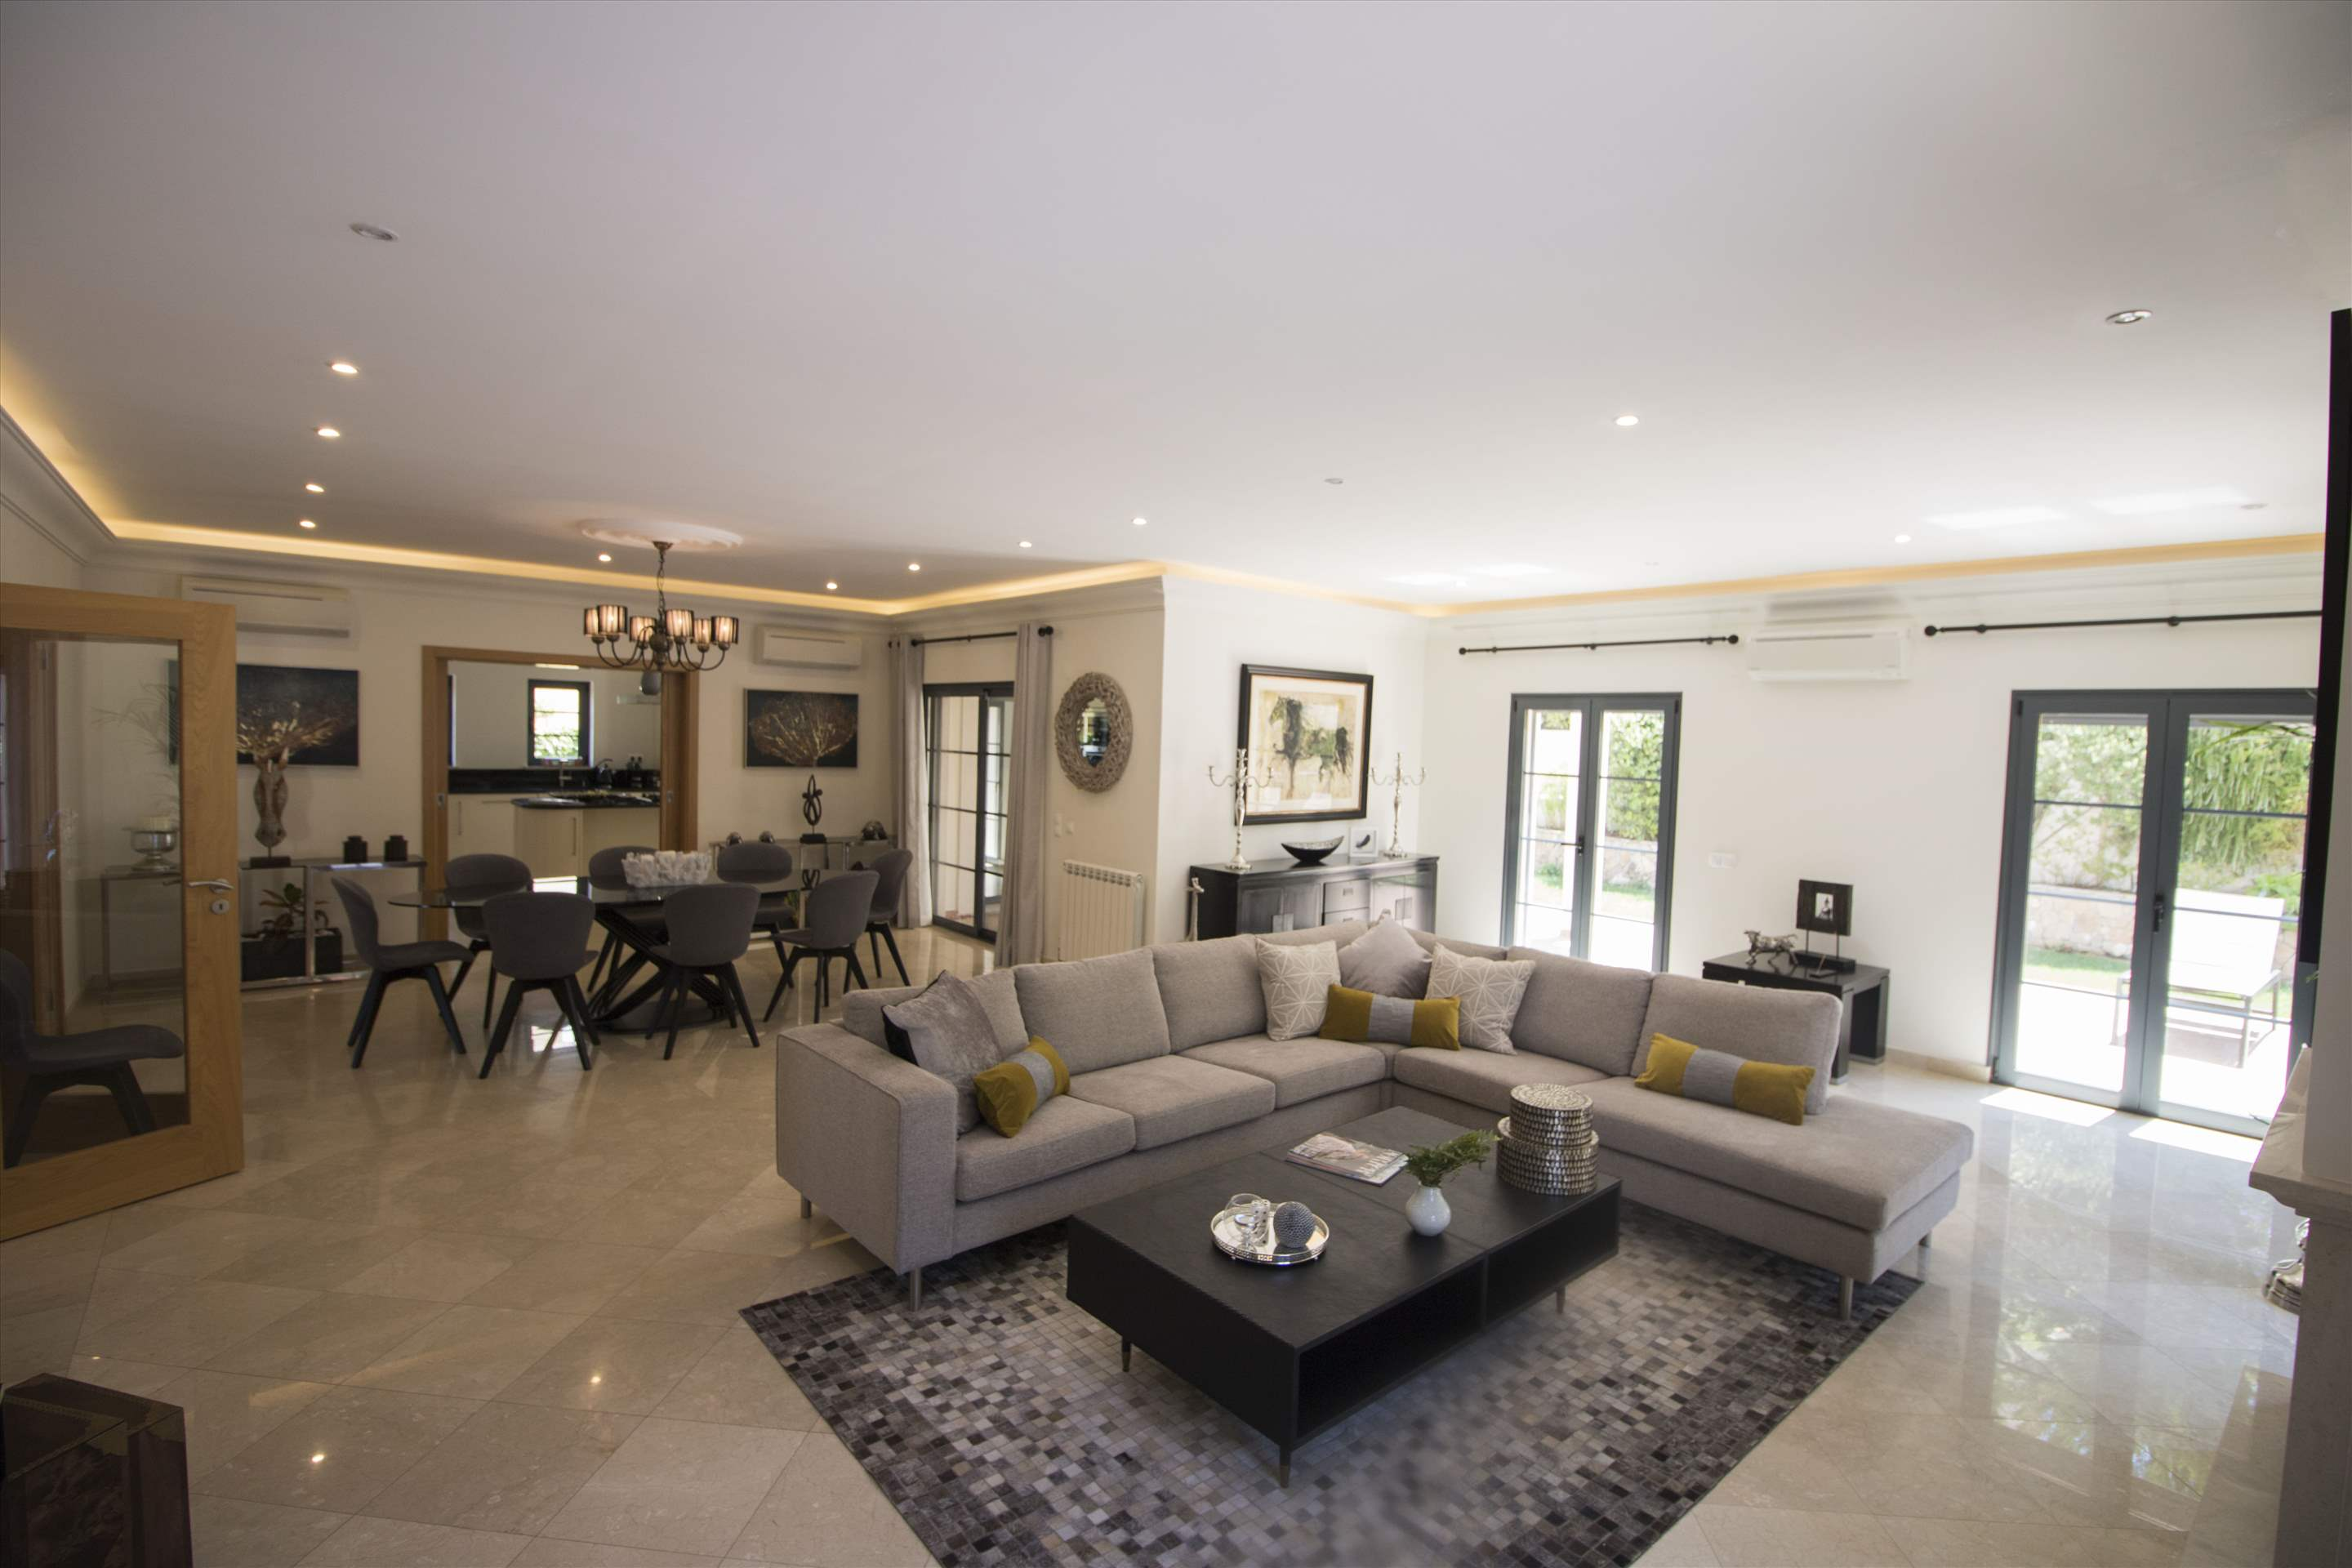 Villa Meryl, 5 bedroom villa in Vale do Lobo, Algarve Photo #7